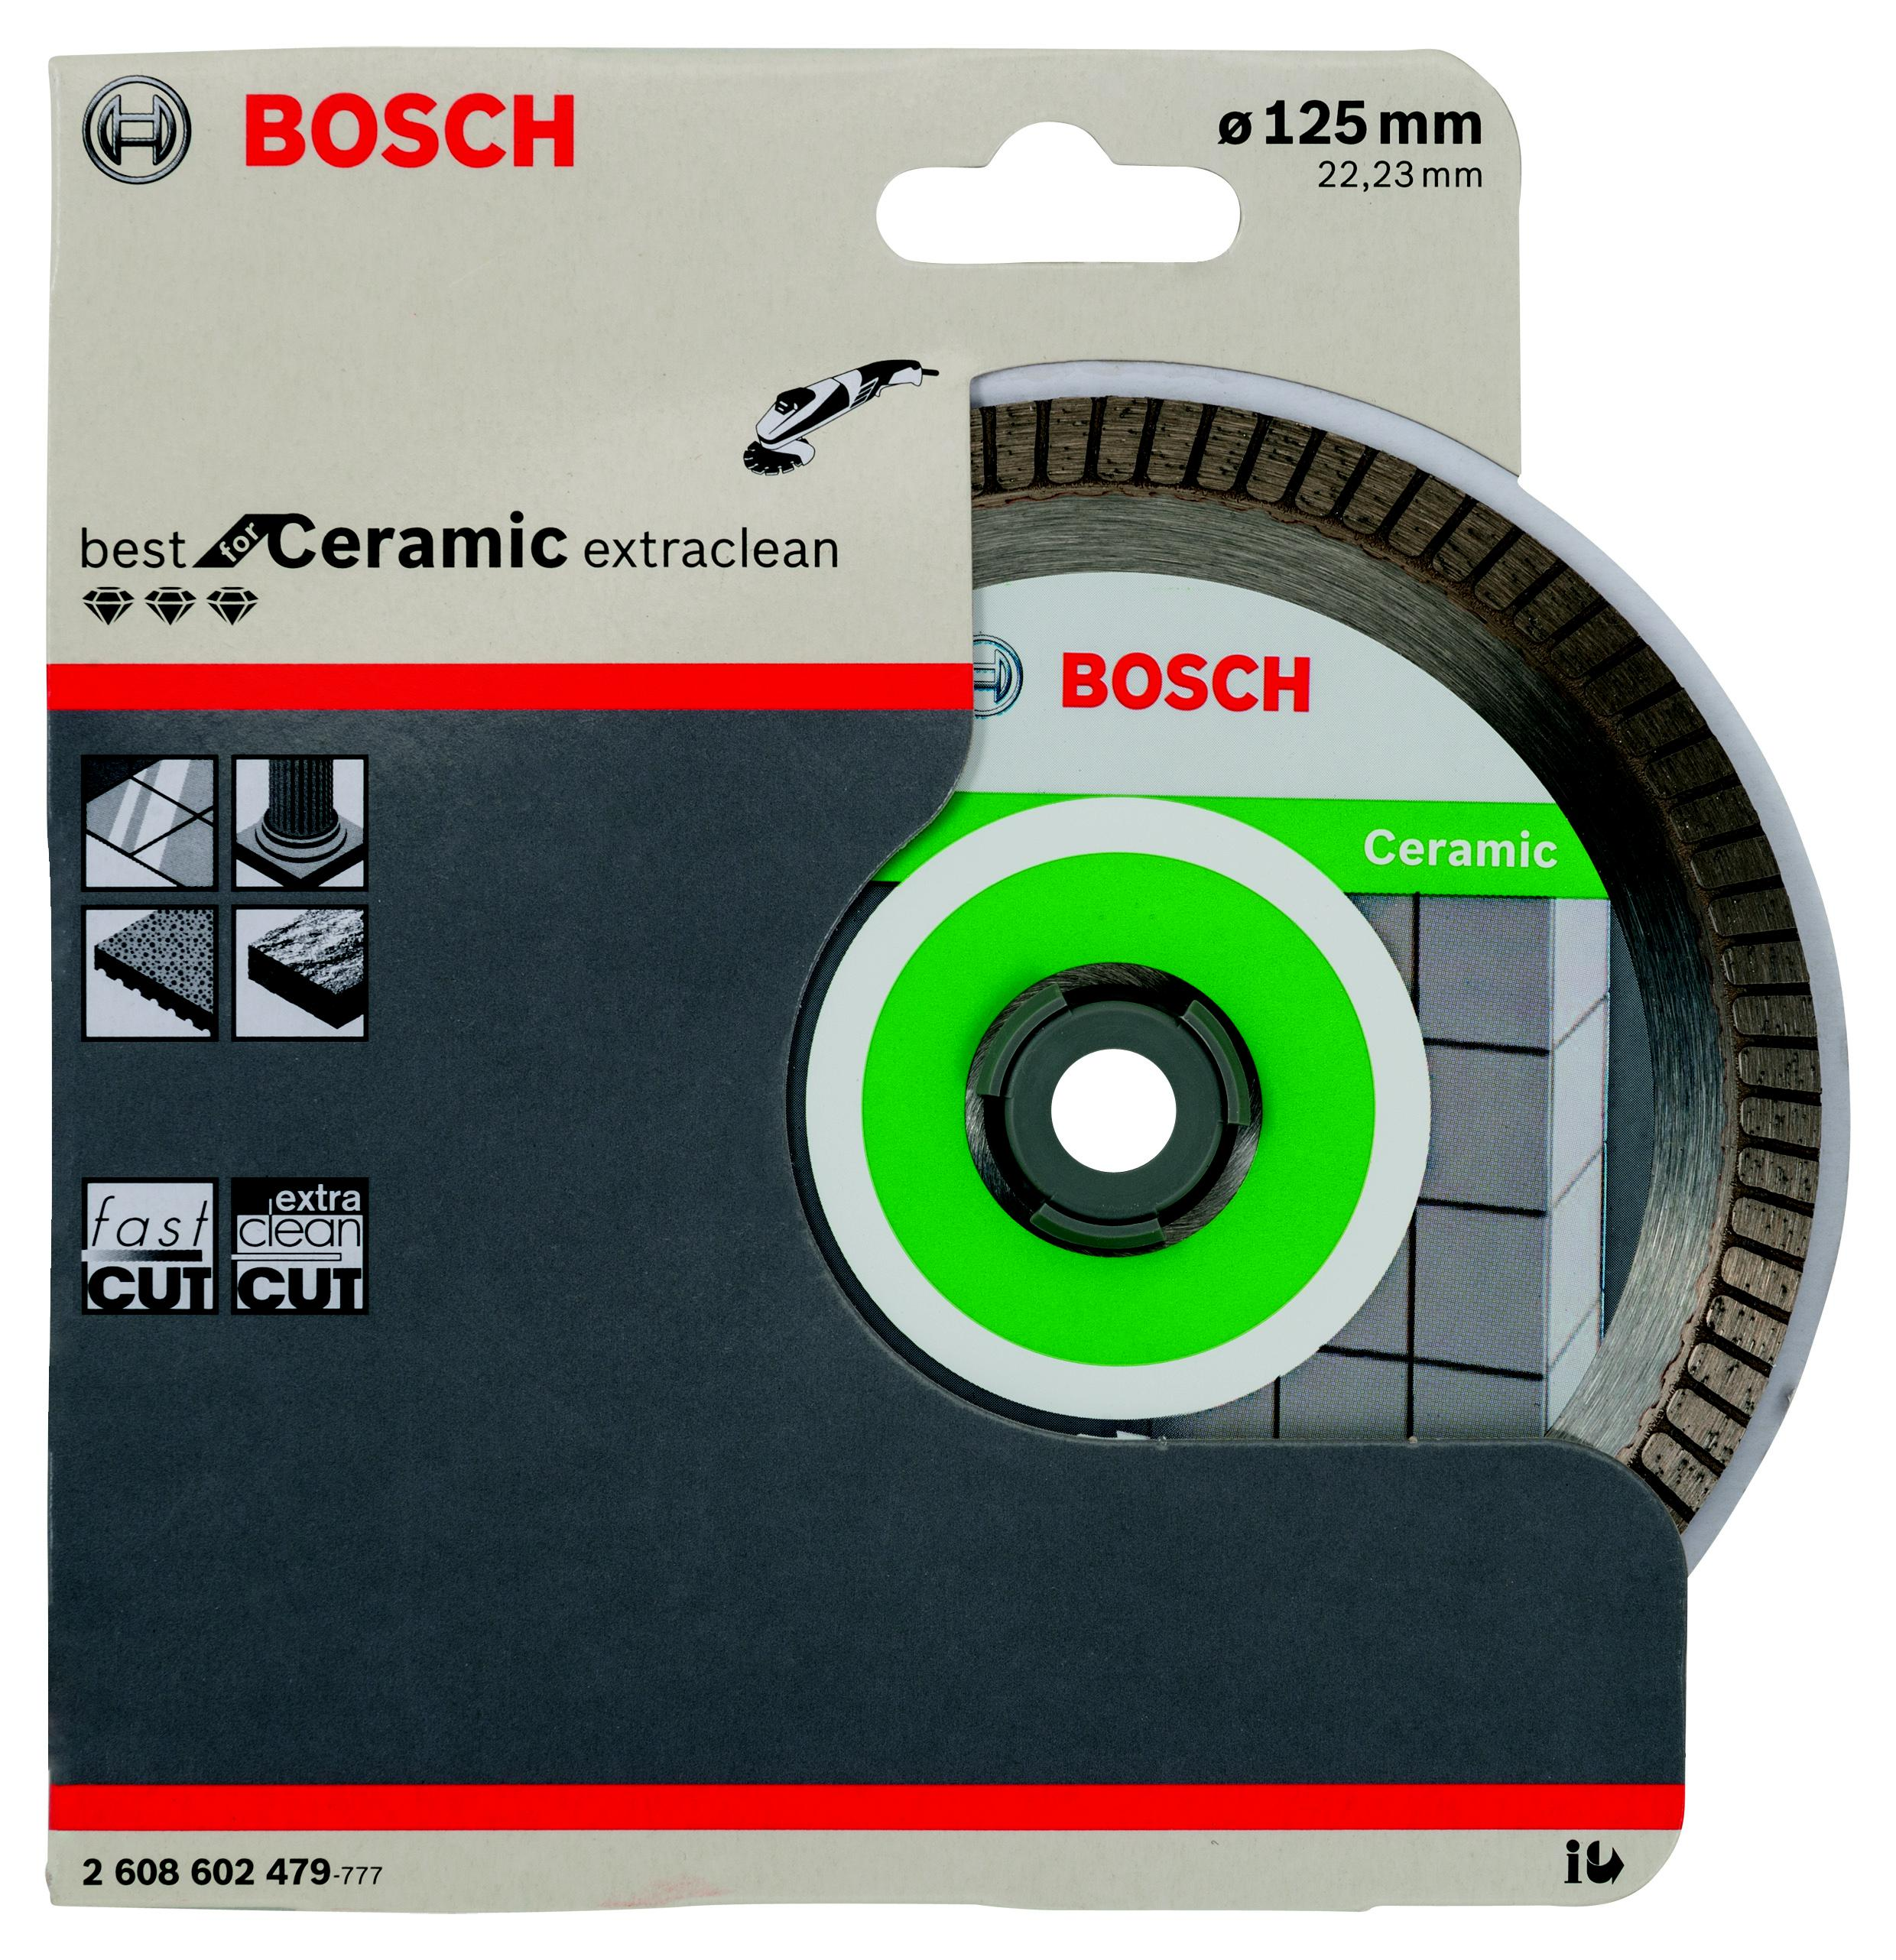 Круг алмазный Bosch Ф125х22мм по керамограниту (best for ceramic extraclean turbo 2.608.602.479) круг алмазный bosch ф125х22мм по керамике best for ceramic 125x22 2 608 602 631